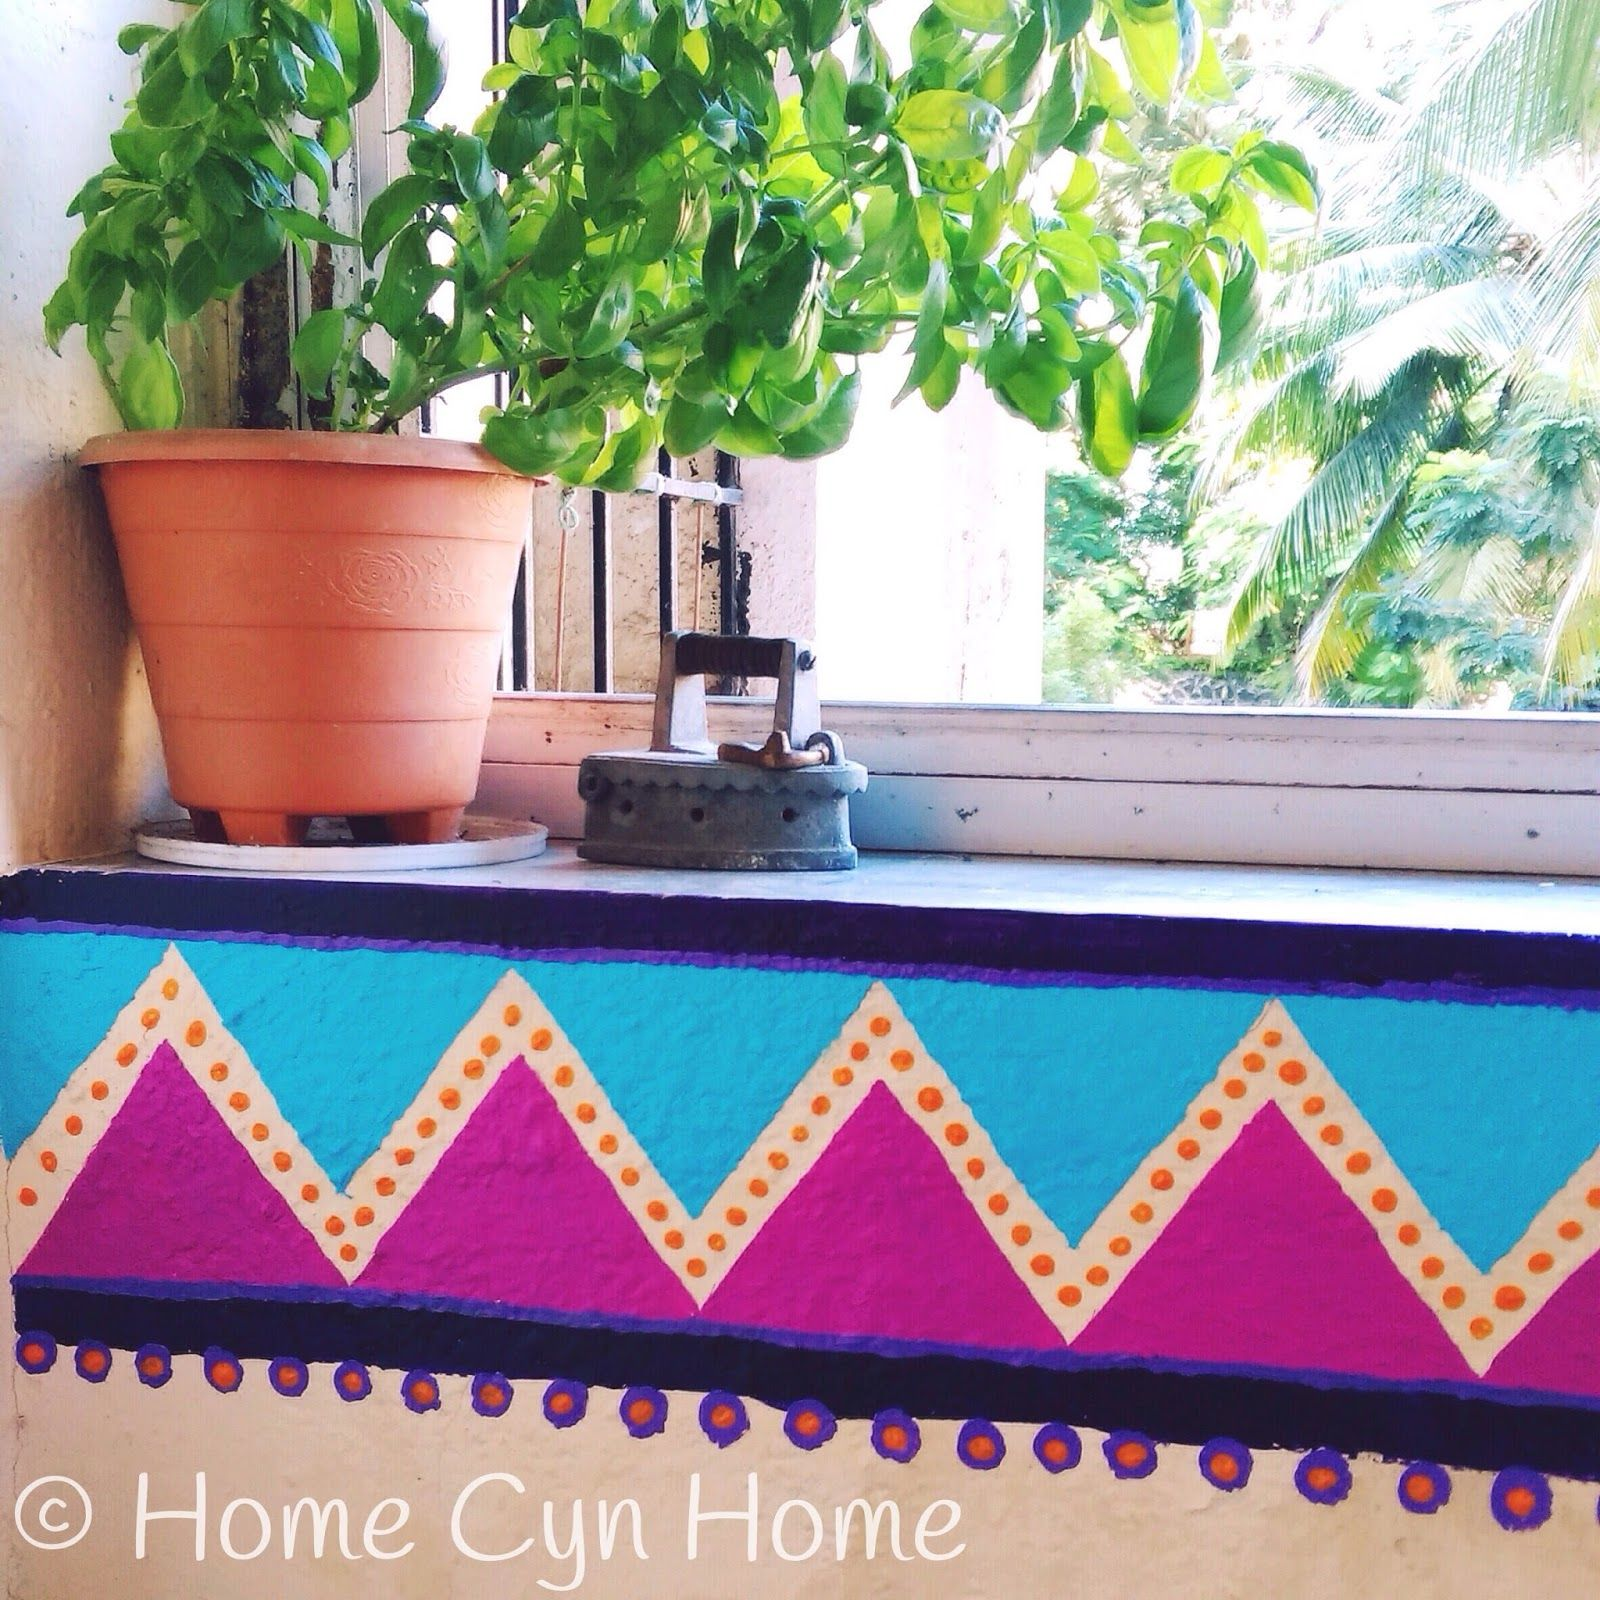 Diy Groovy Geometric Wall Border Garden Decor Projects Diy Wall Painting Wall Borders